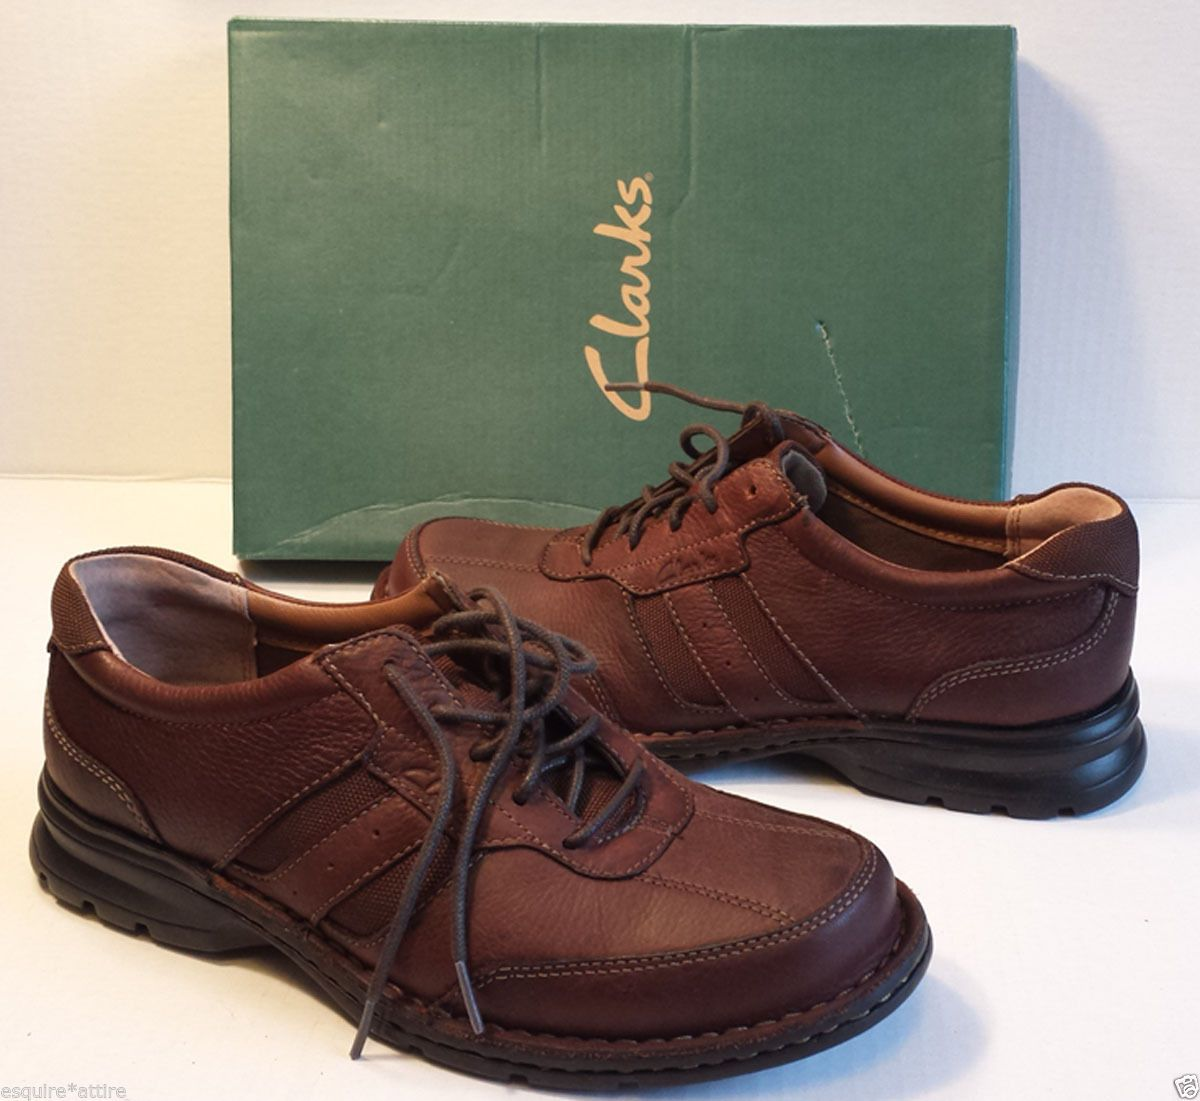 clarks size 5 mens shoes